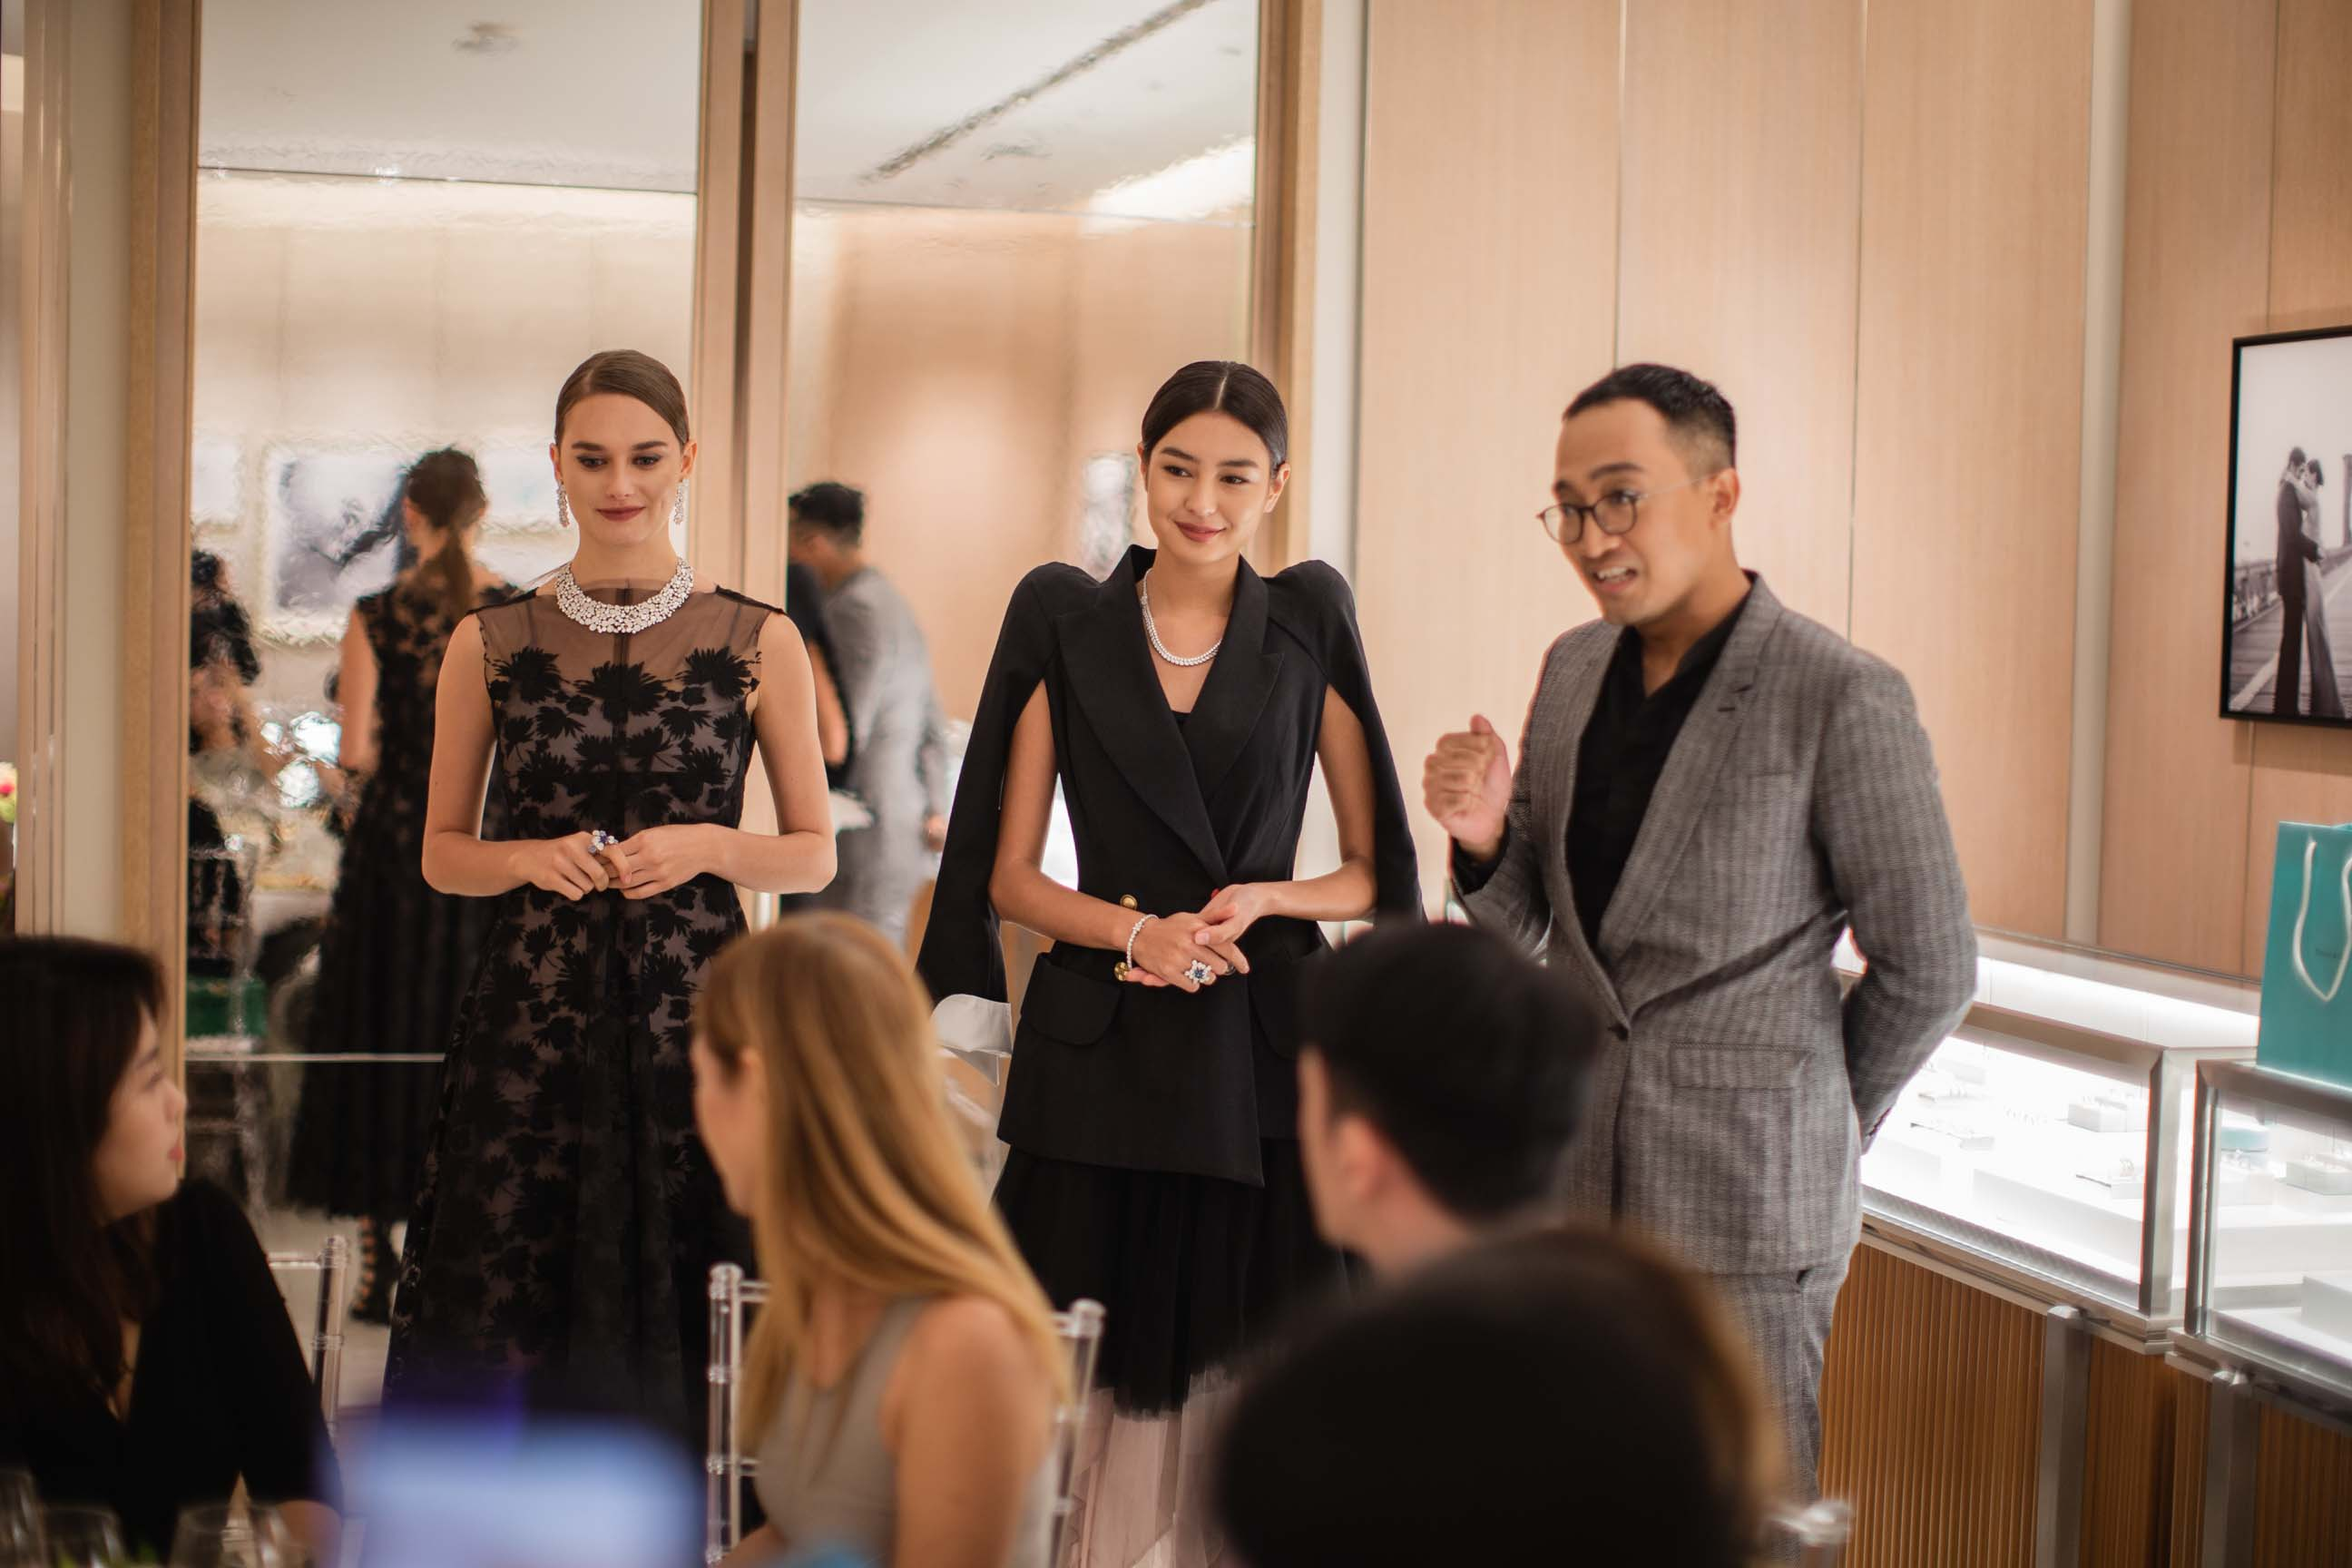 A glimpse into the private dinner for L'armoire and Tiffany & Co